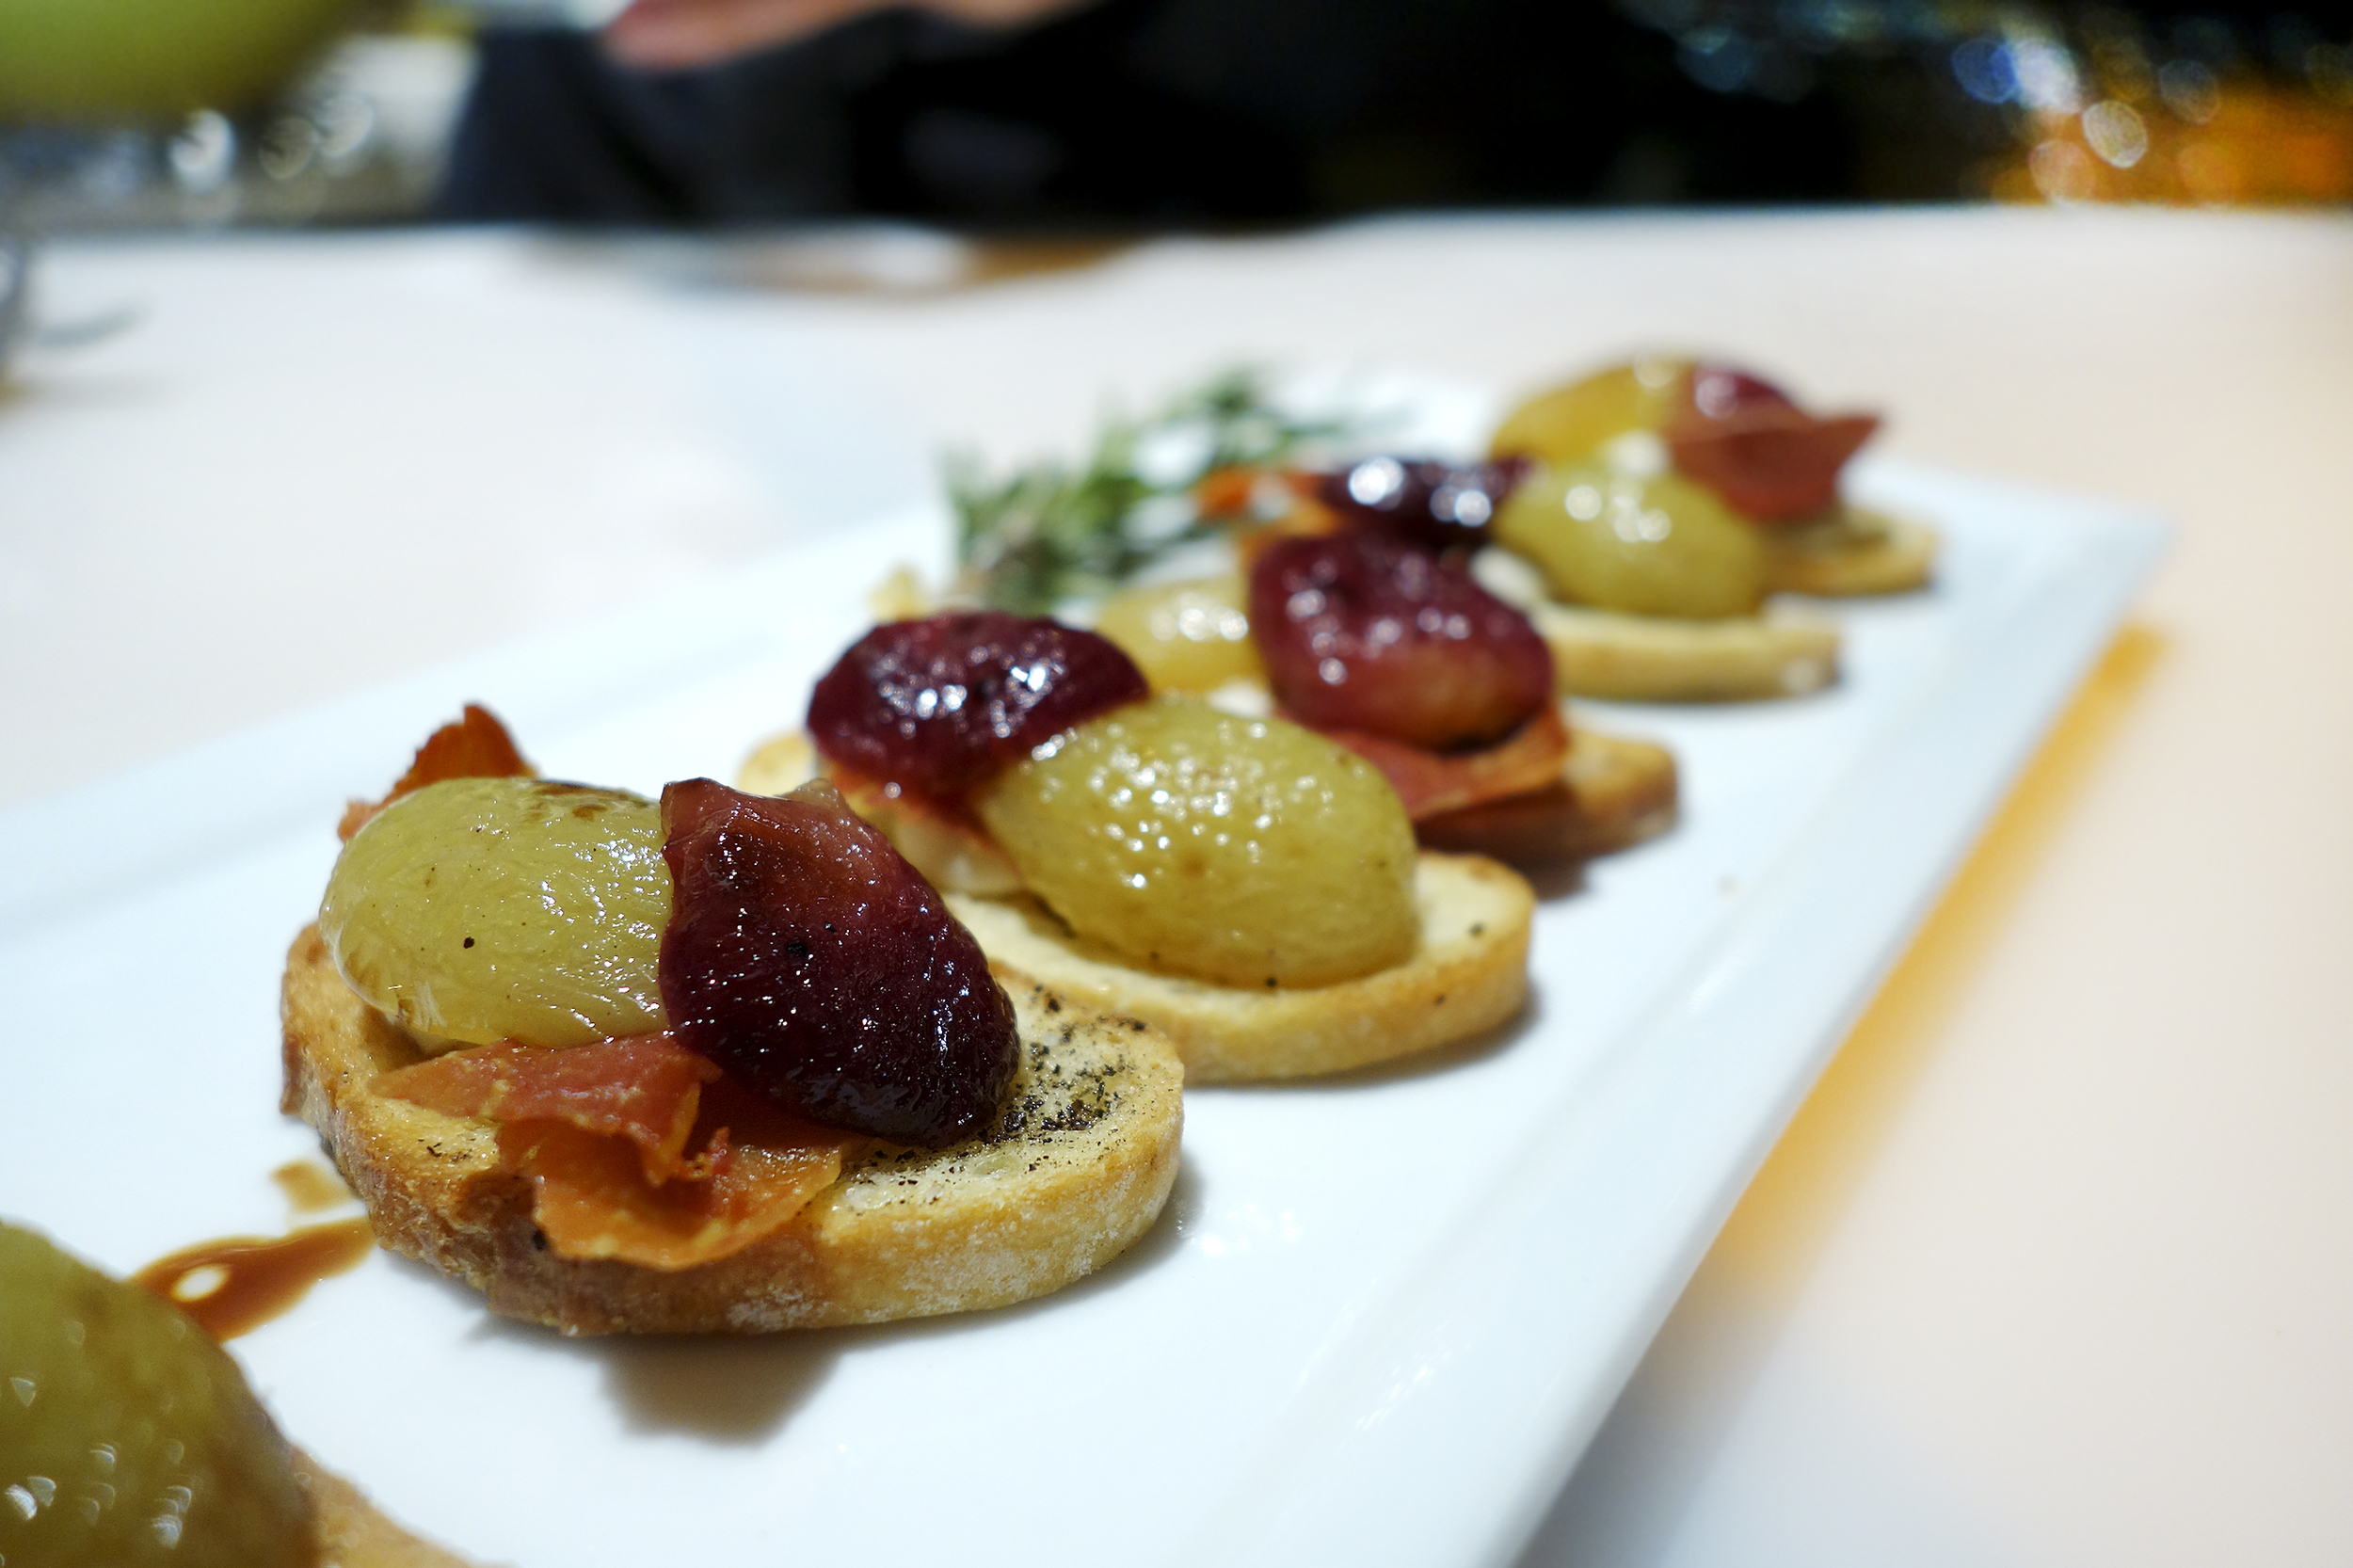 Roasted Grapes - Chevre - Prosciutto - Crostini